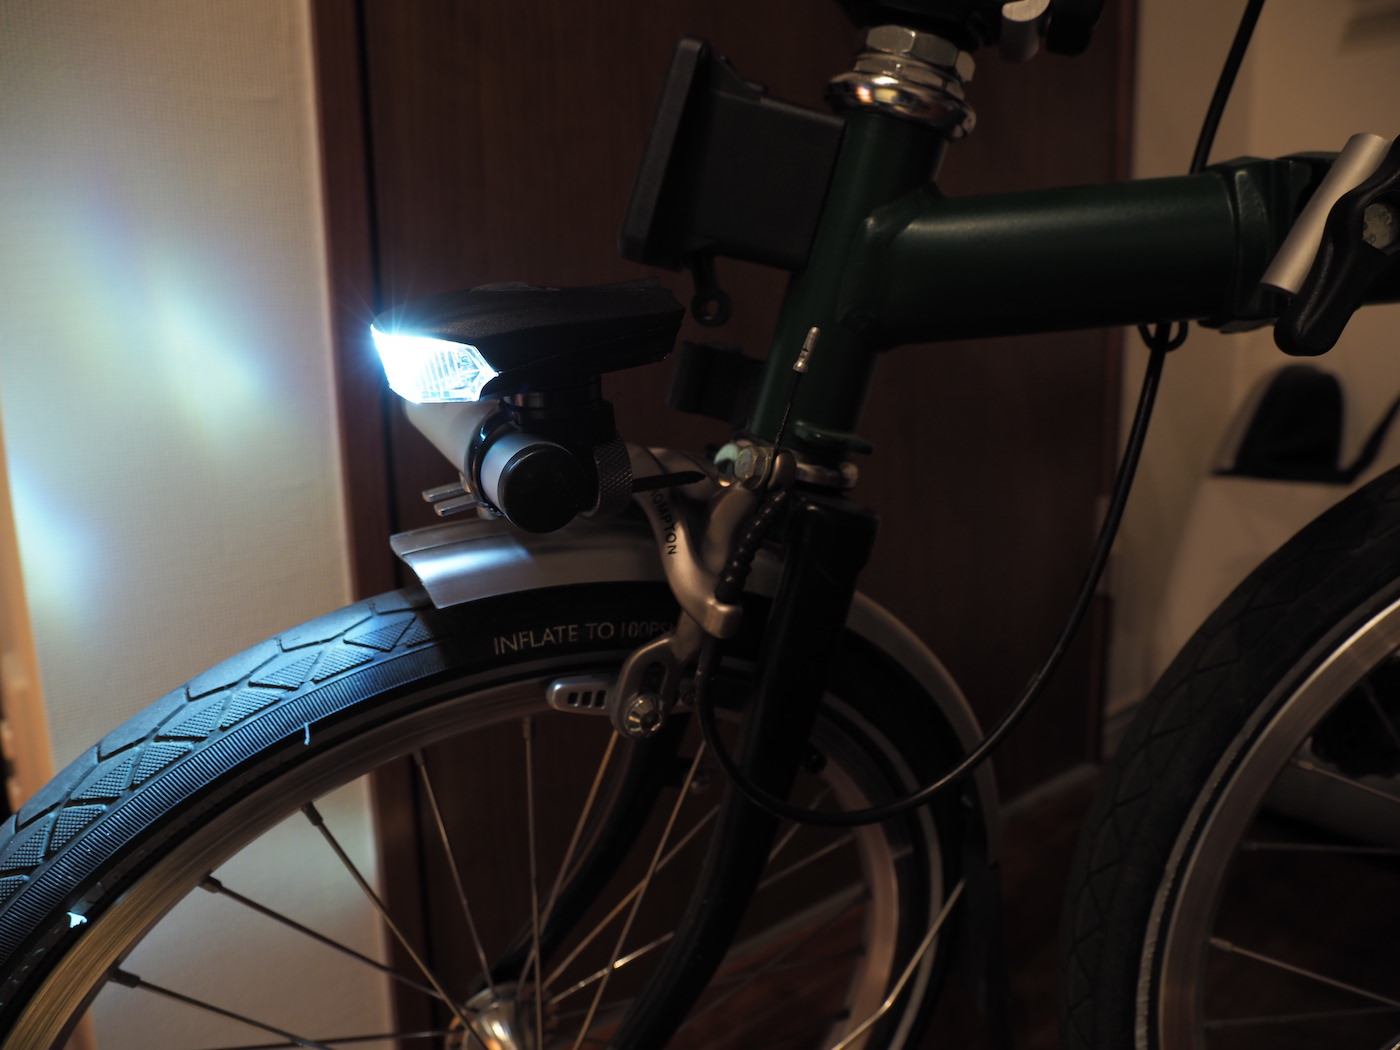 Cree xpg 2 cheap chinese led light with wide angle lens for bicycle 00033